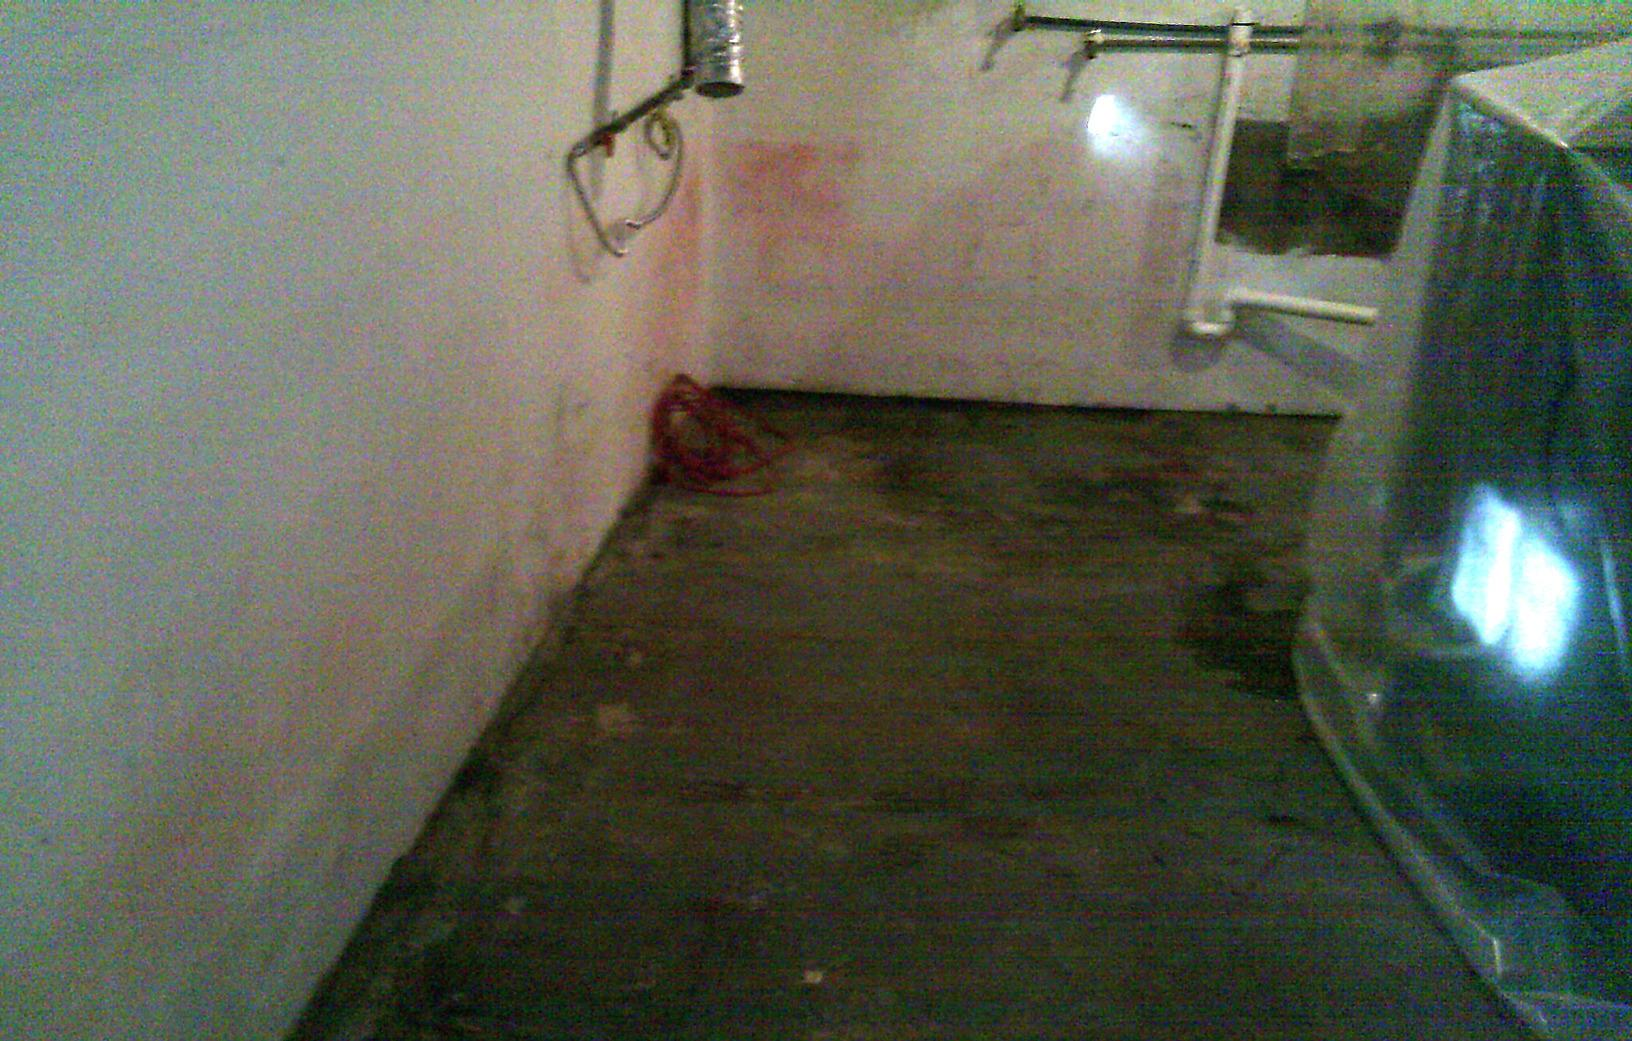 The basement before was wet and vulnerable to repeated water intrusion.